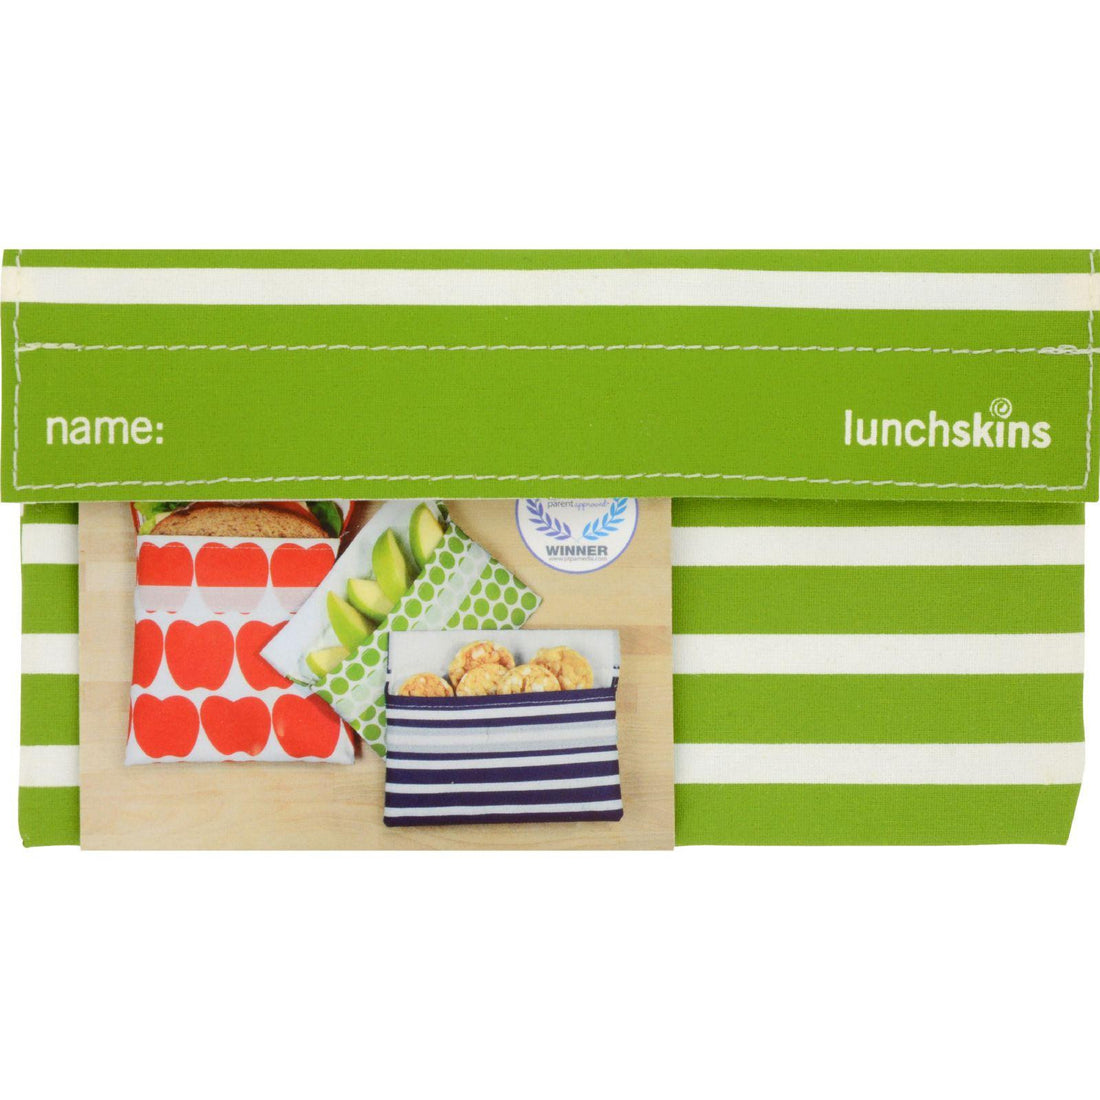 Mother Mantis: Lunchskins Snack Bag - Green Stripe Lunchskins